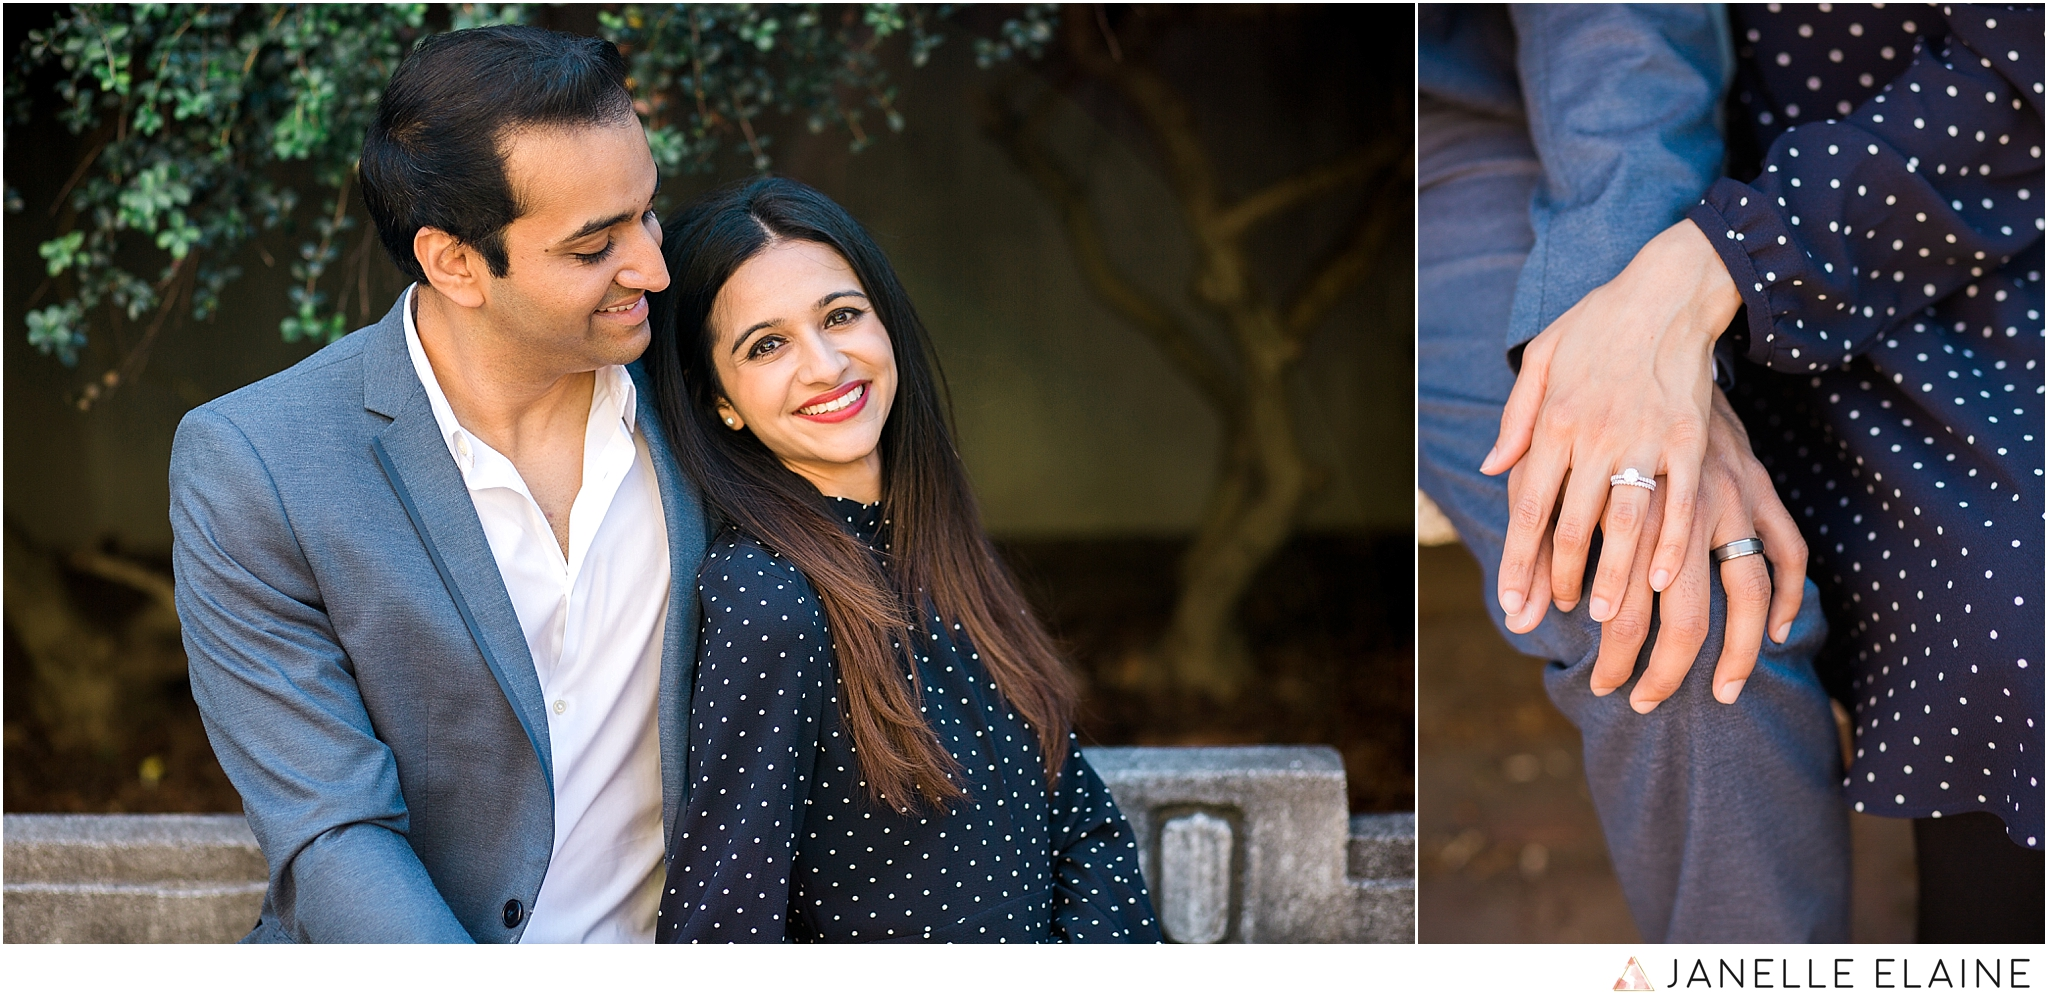 janelle elaine photography-zain and umema-seattle-uw-red square-engagement-photographer-73.jpg